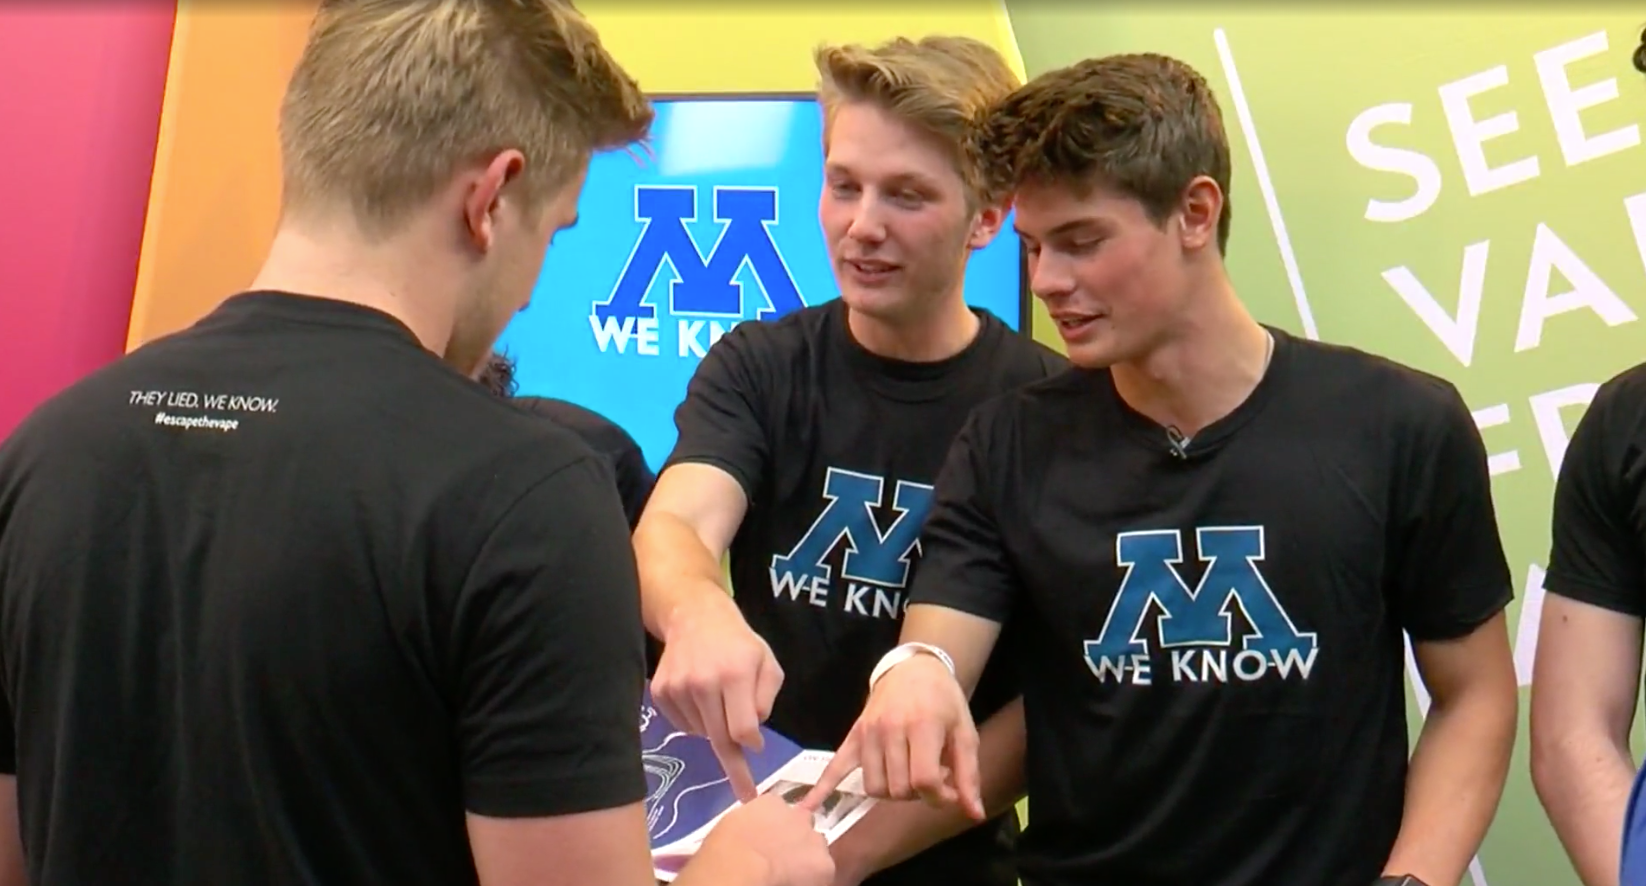 'I Don't Want Anyone To Die From This': Minnetonka Students Encouraging Each Other To #EscapeTheVape